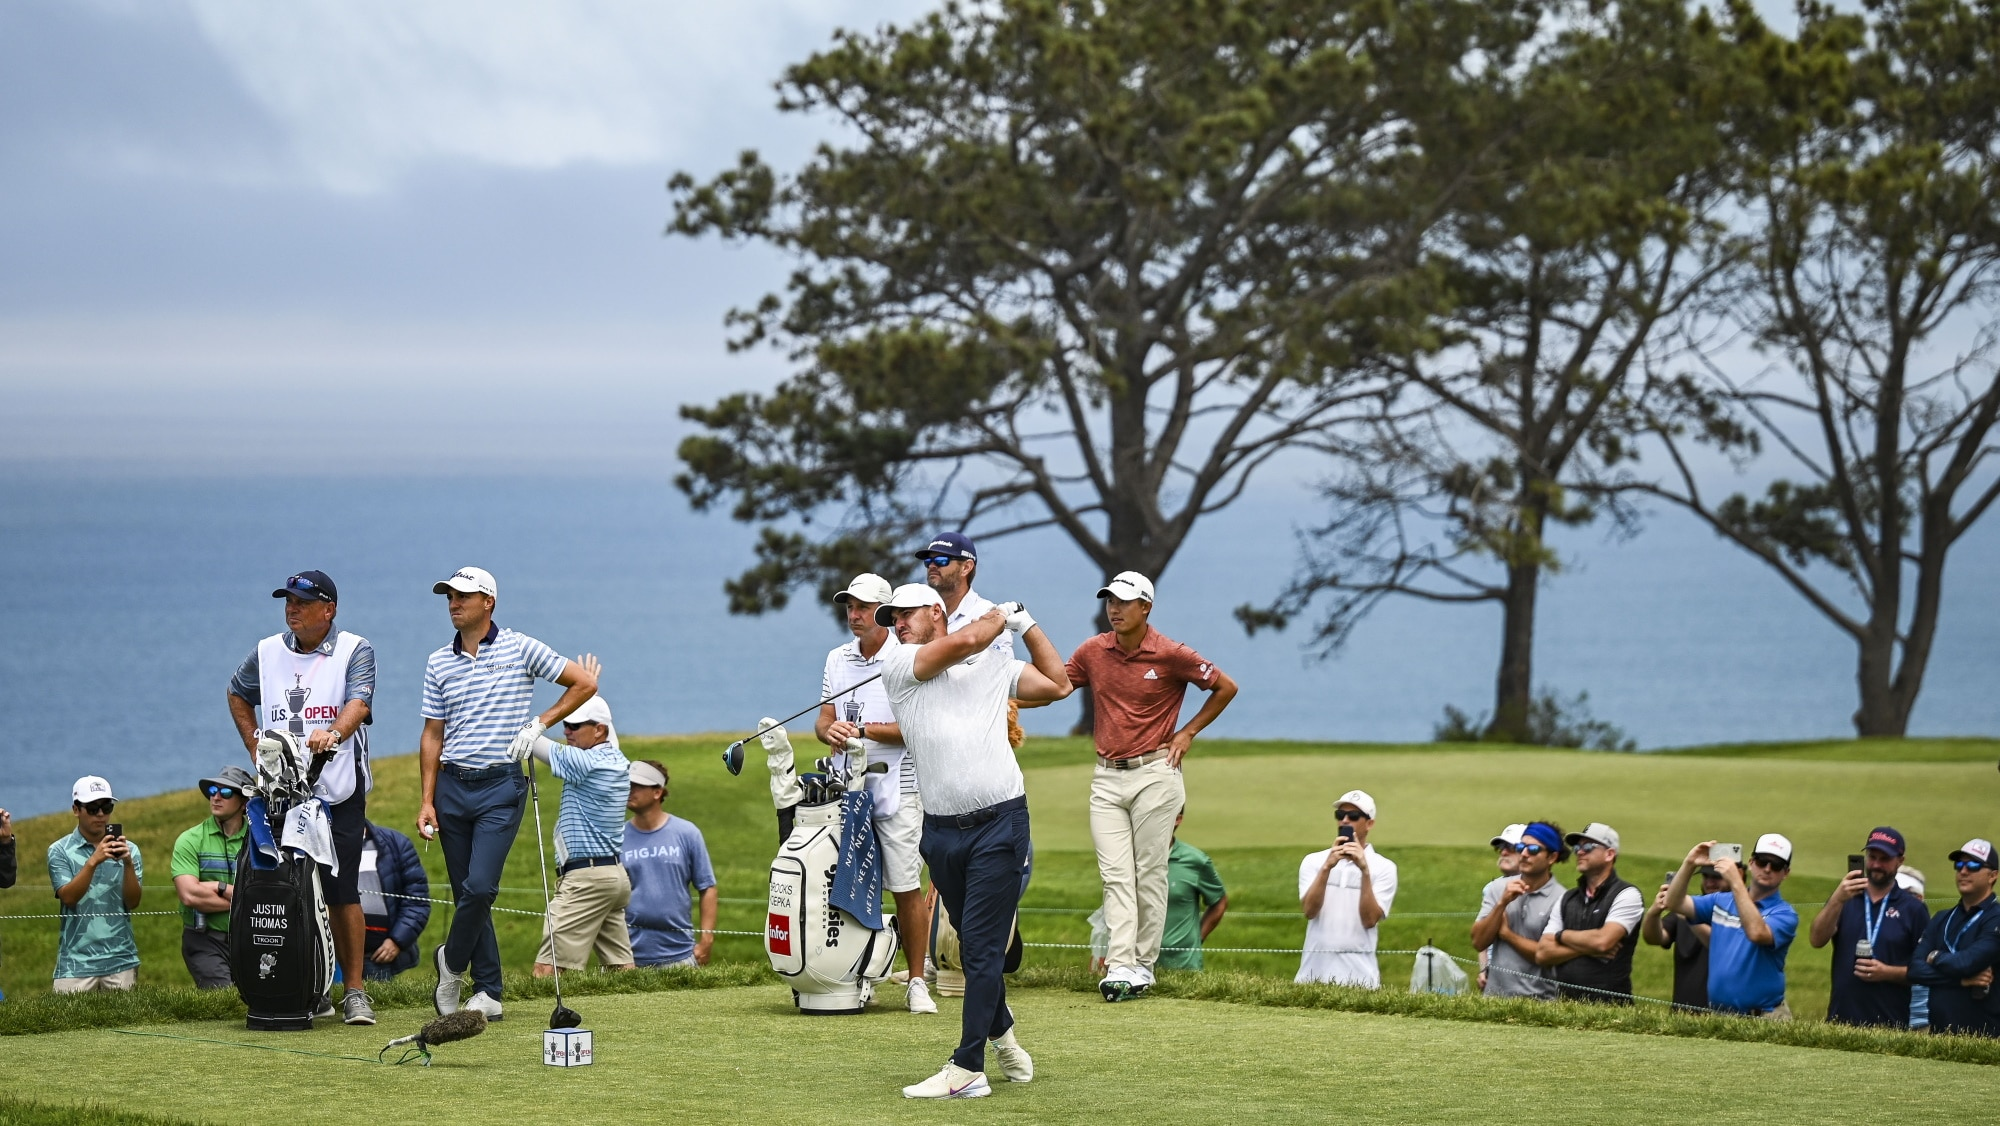 How To Watch Us Open 2021 Live Stream Golf Online Anywhere And Without Cable Techradar